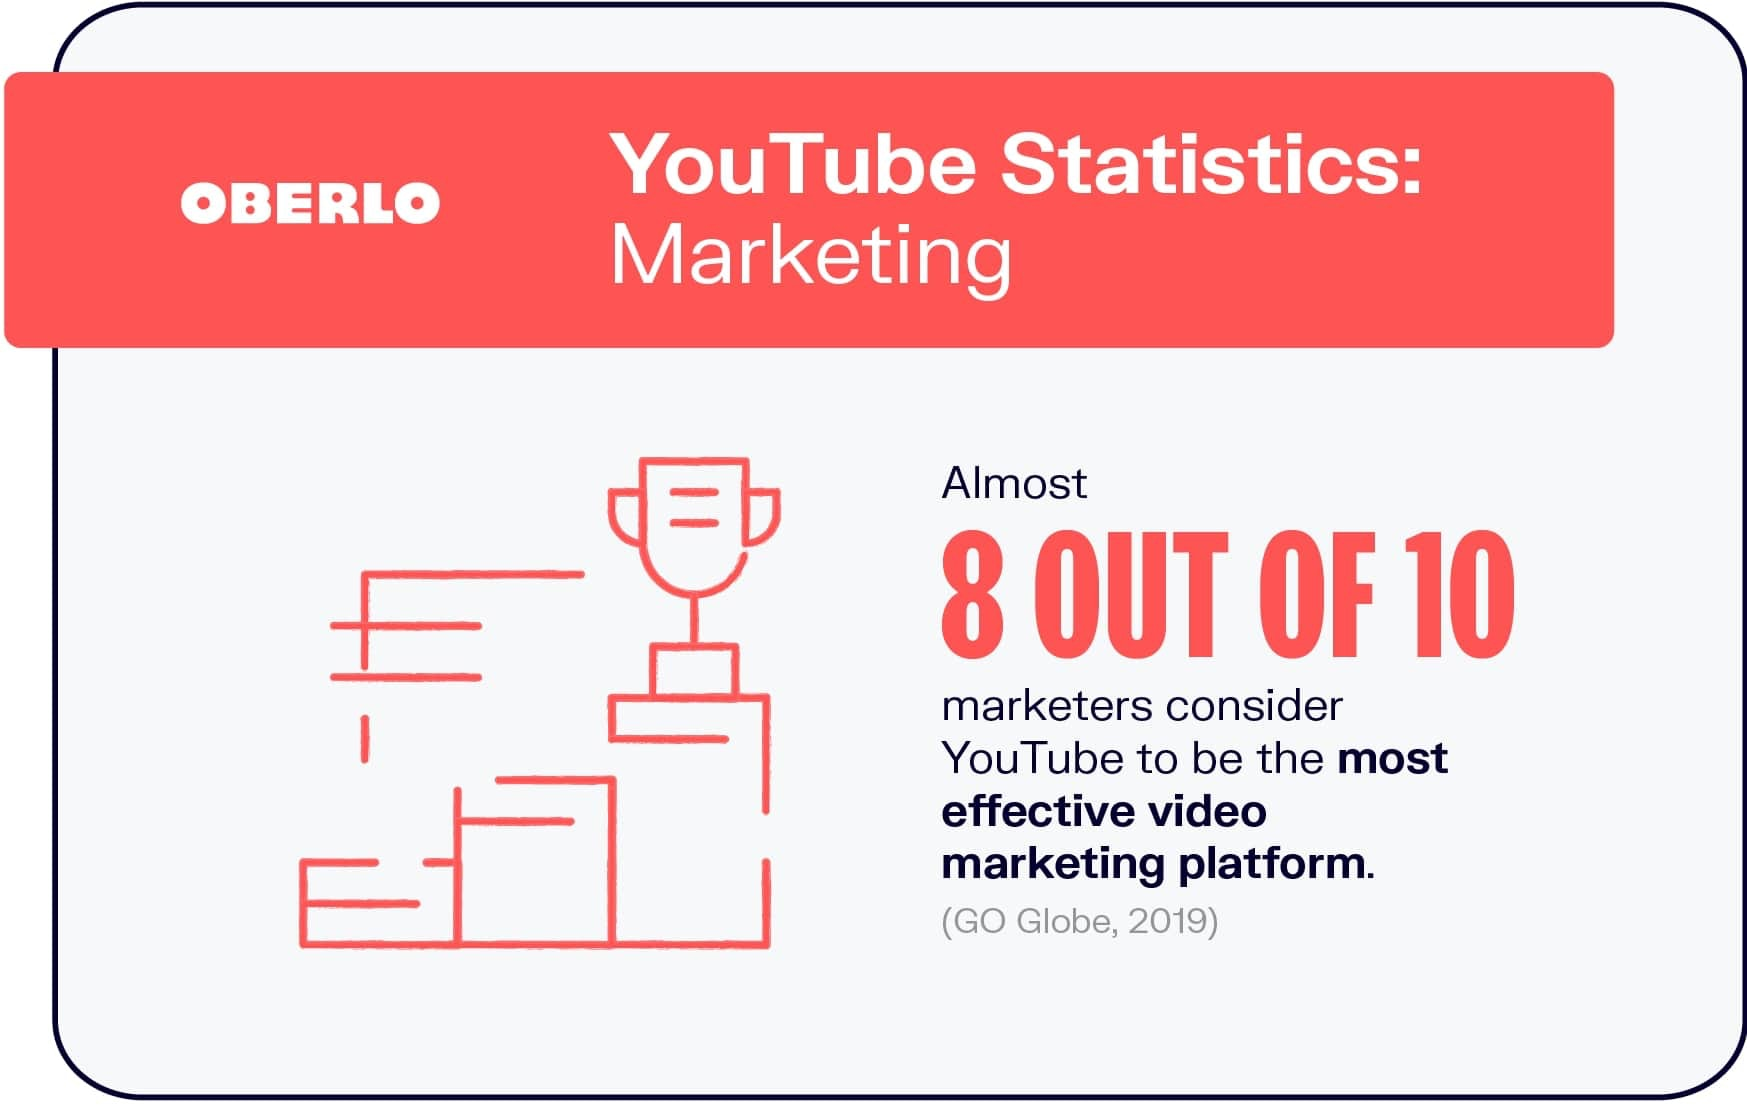 8 out of 10 marketers consider youtube the most effective video marketing platform